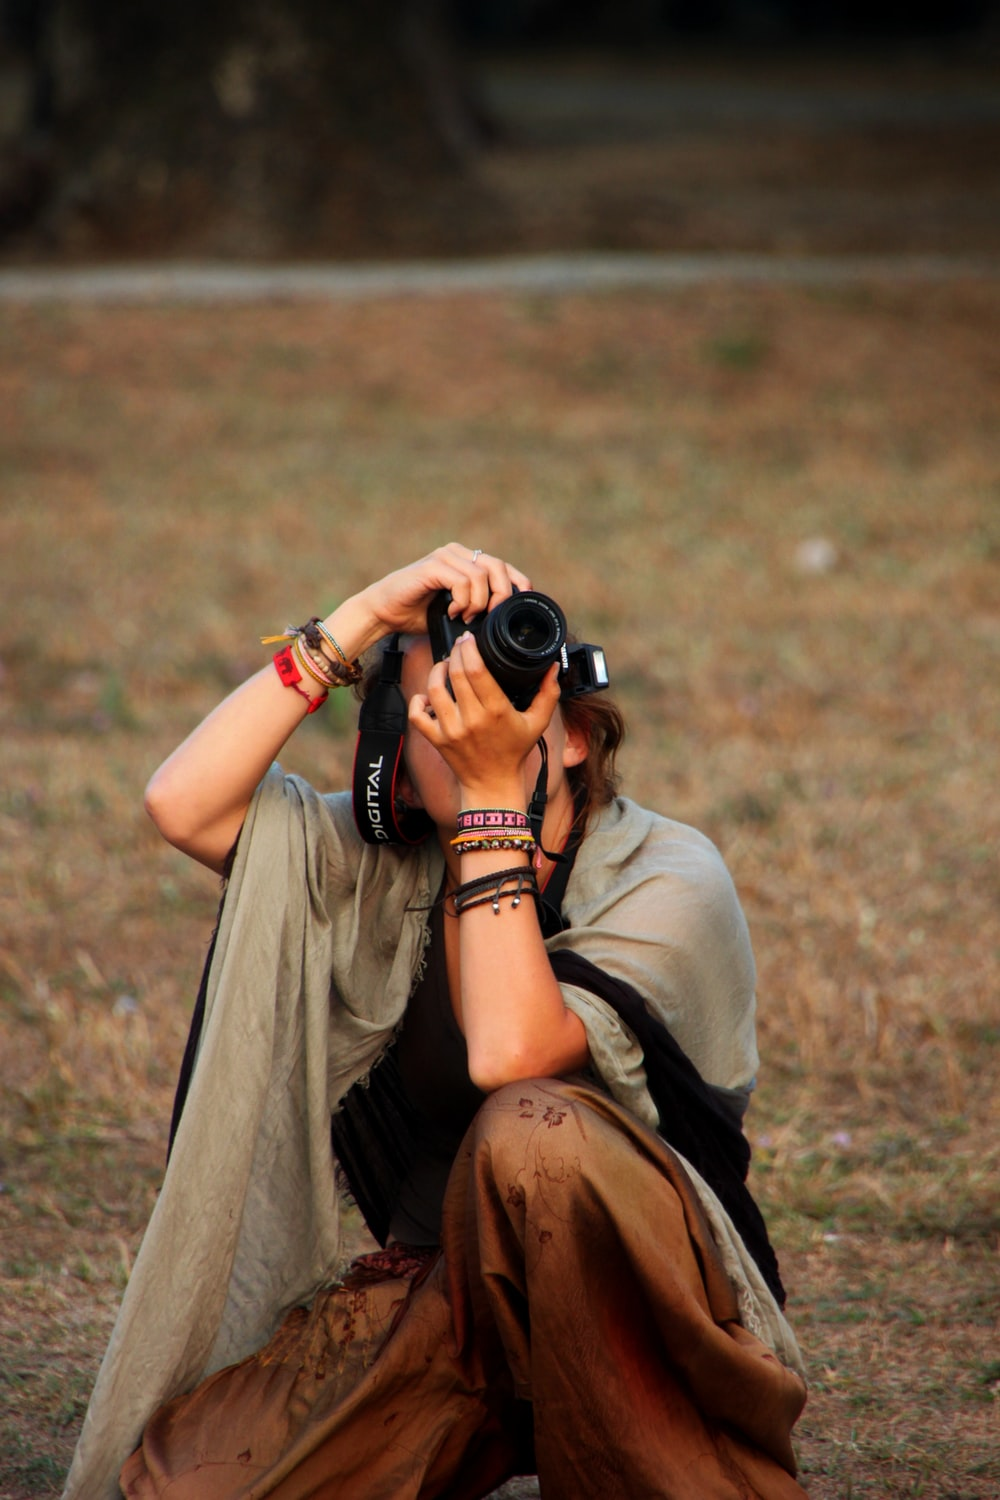 Woman Taking A Photo Using DSLR Camera